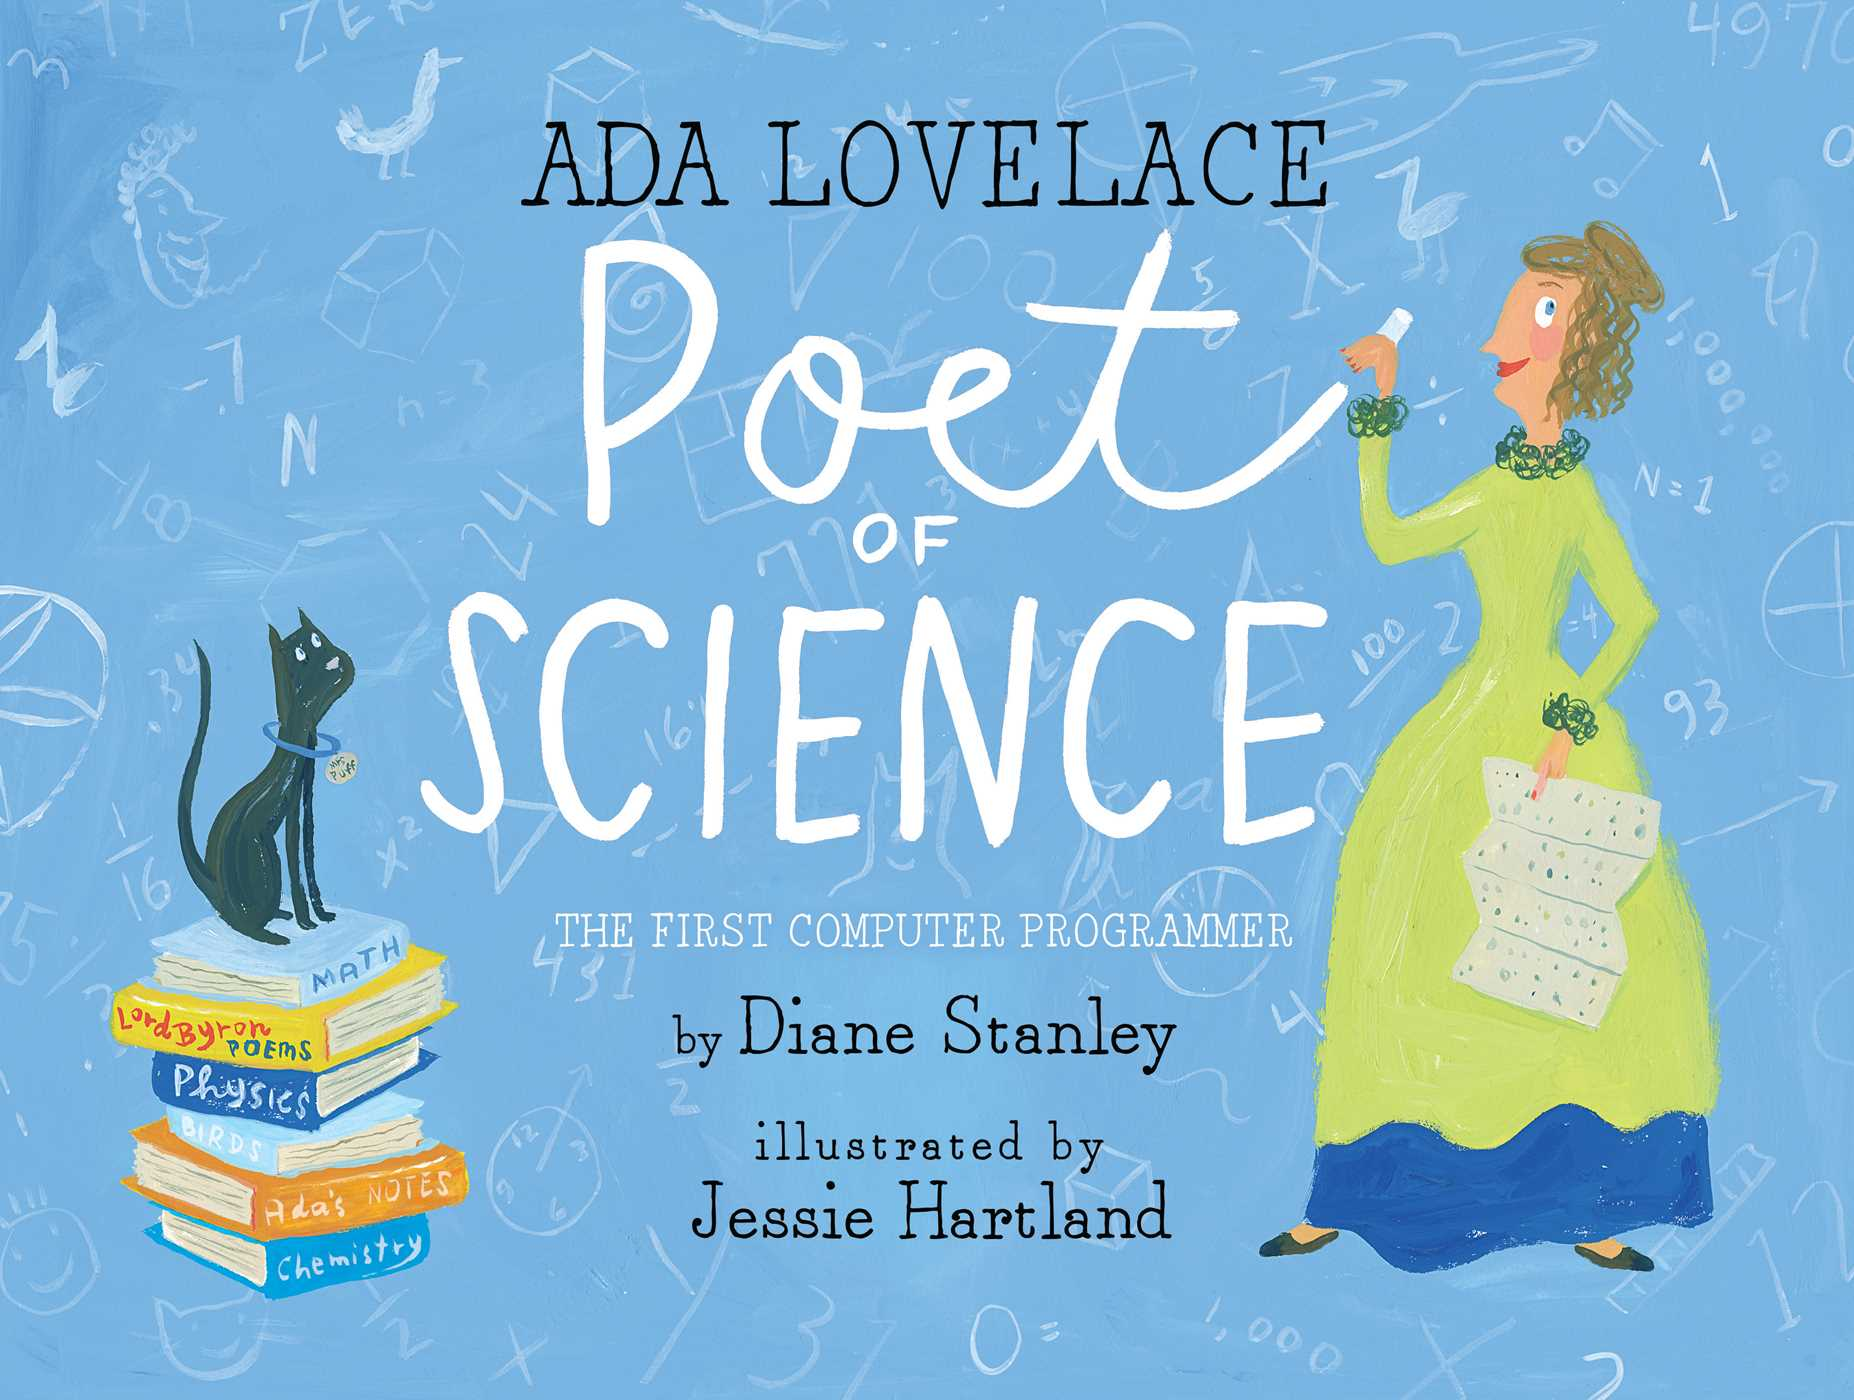 Ada lovelace poet of science 9781481452496 hr